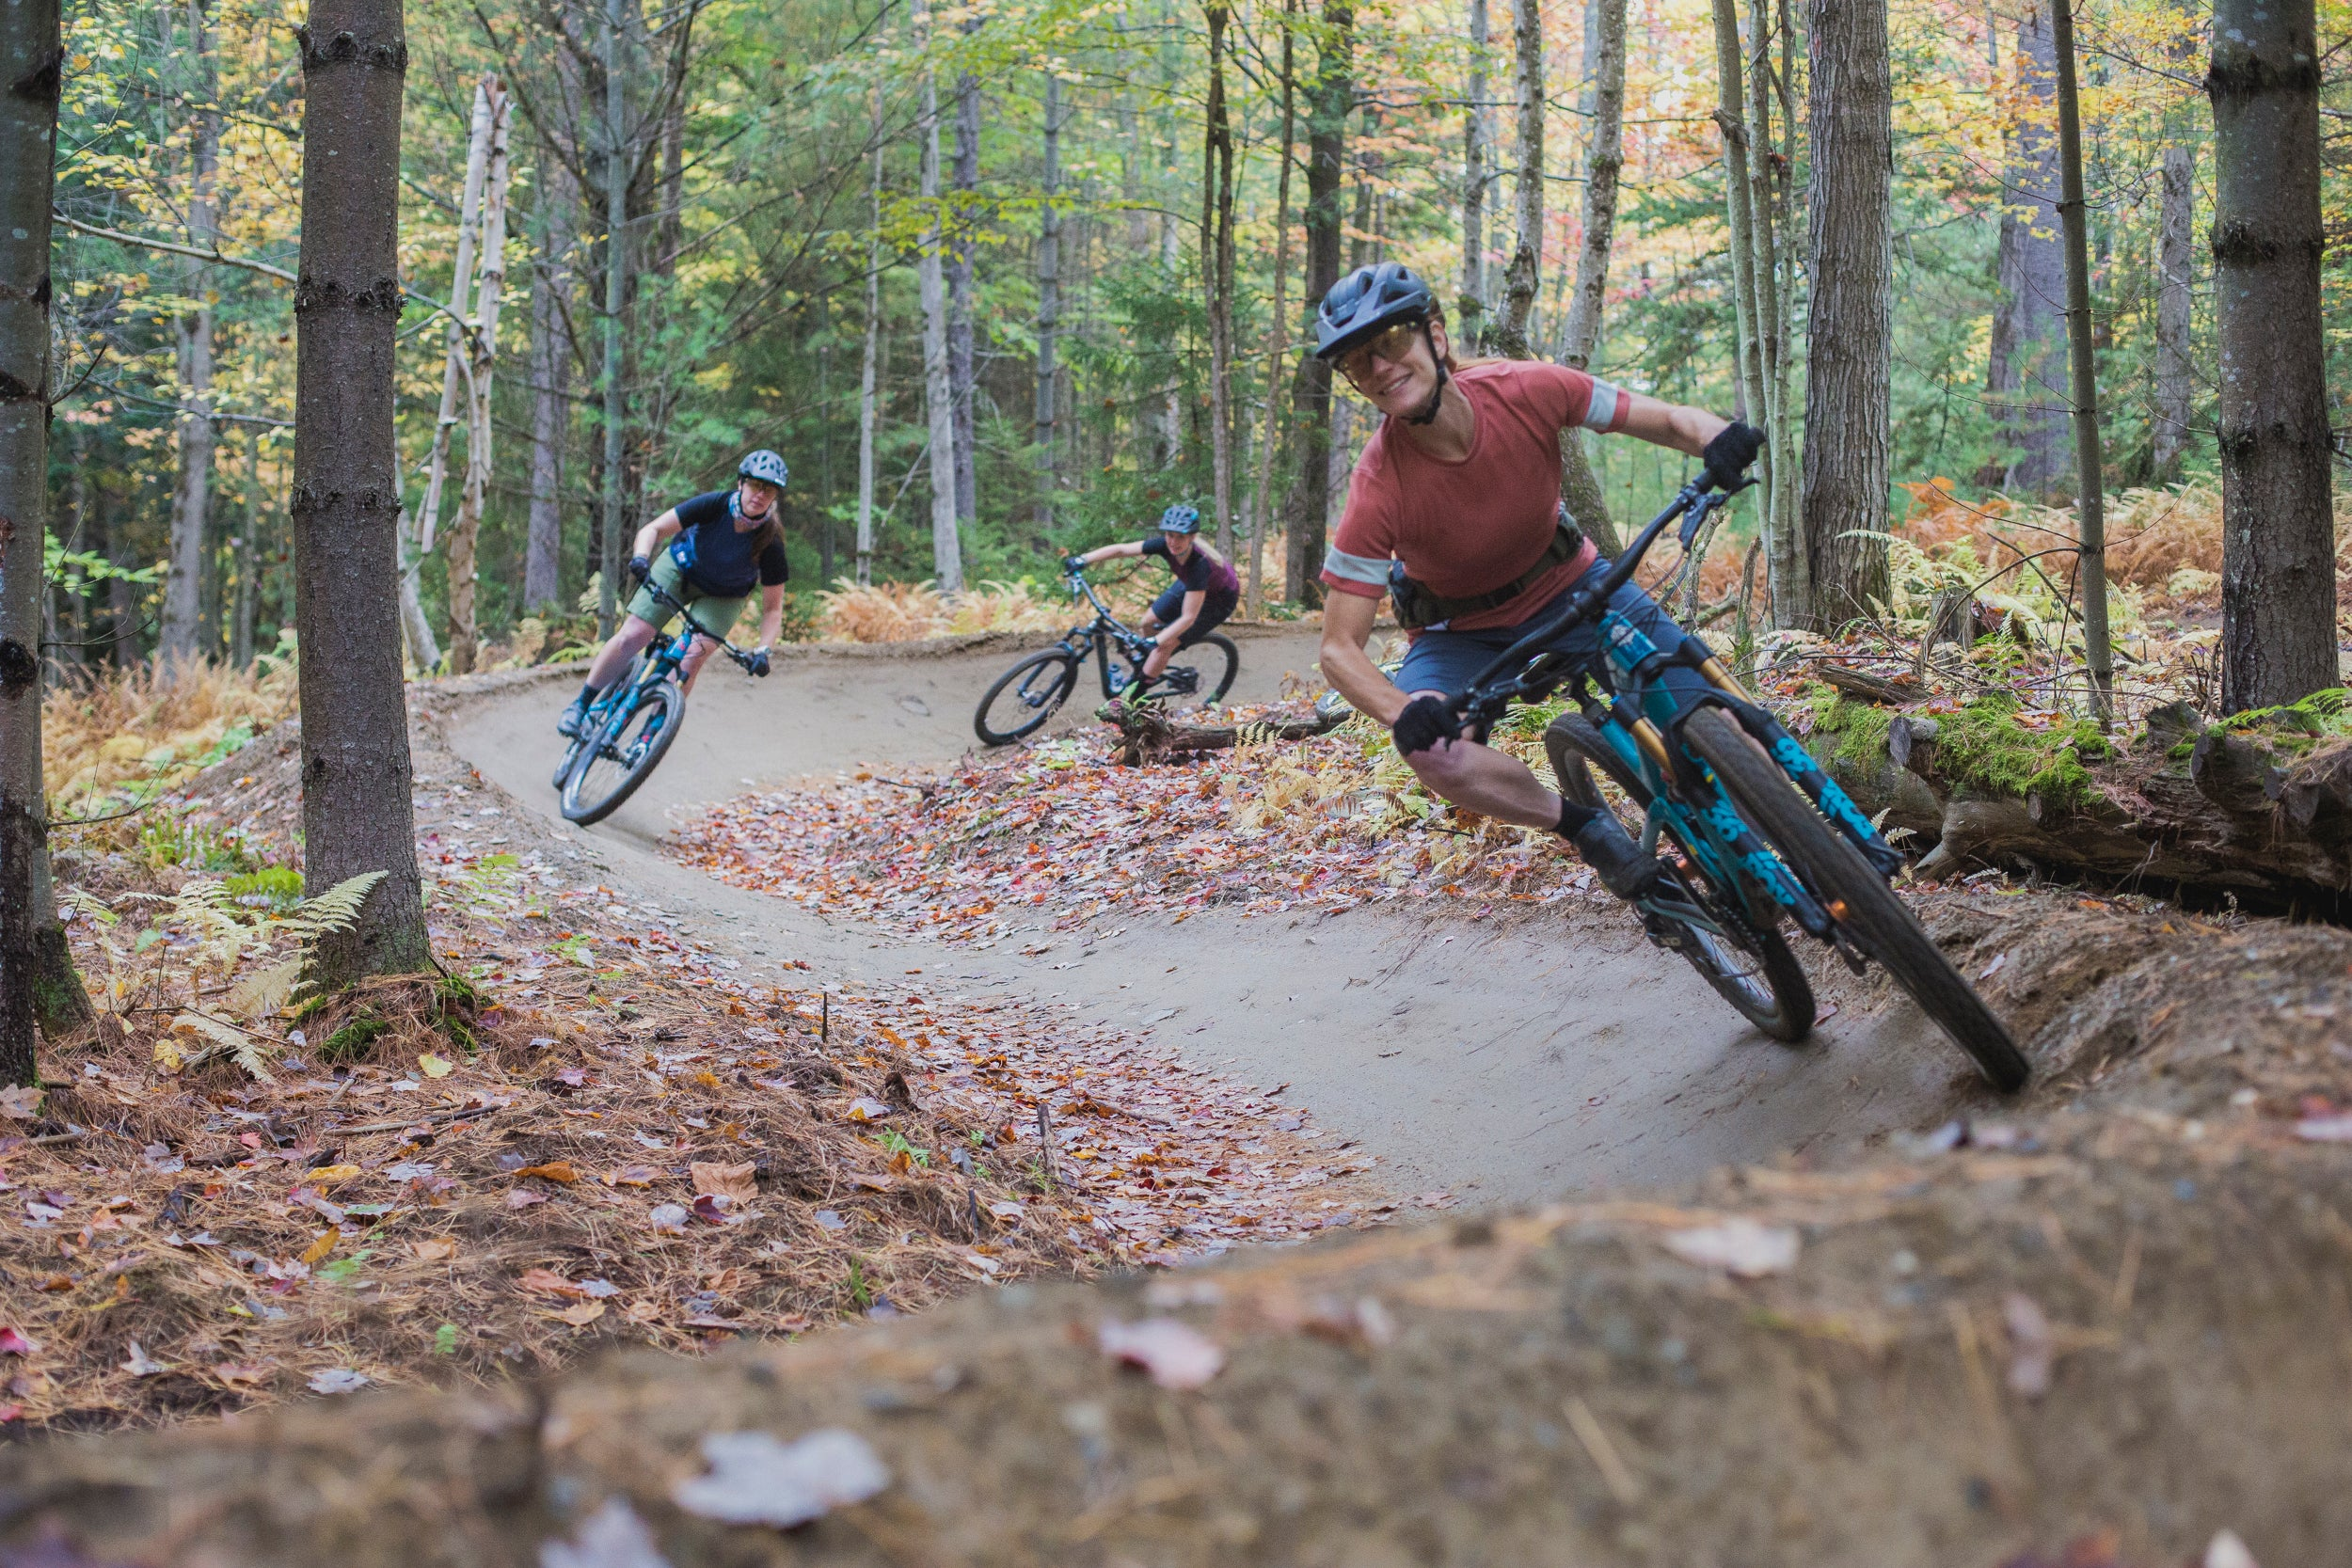 Basic Tips for Learning How to Ride a Berm